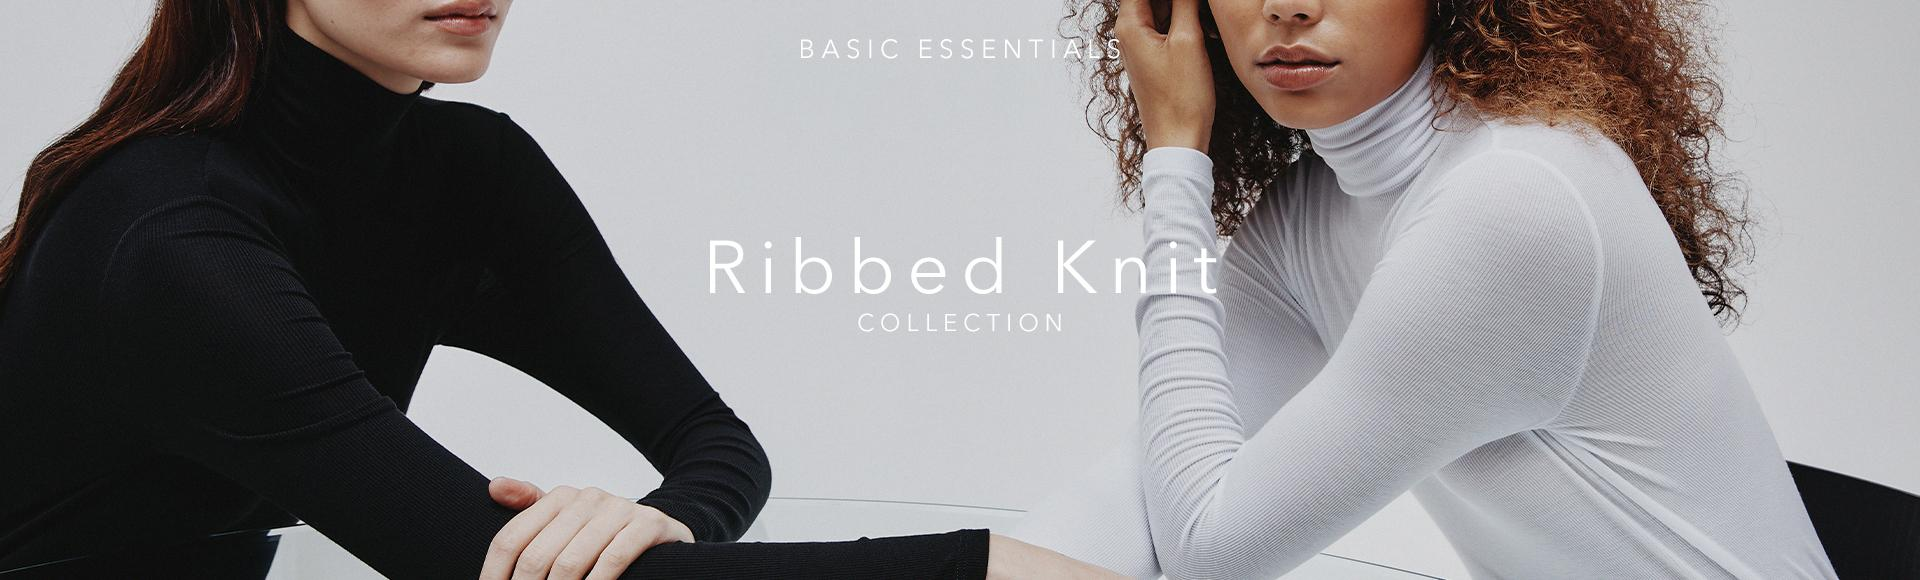 For our 20th anniversary, we introduce The Ribbed Knit Collection—a 20-piece capsule of ribbed knit basic essentials